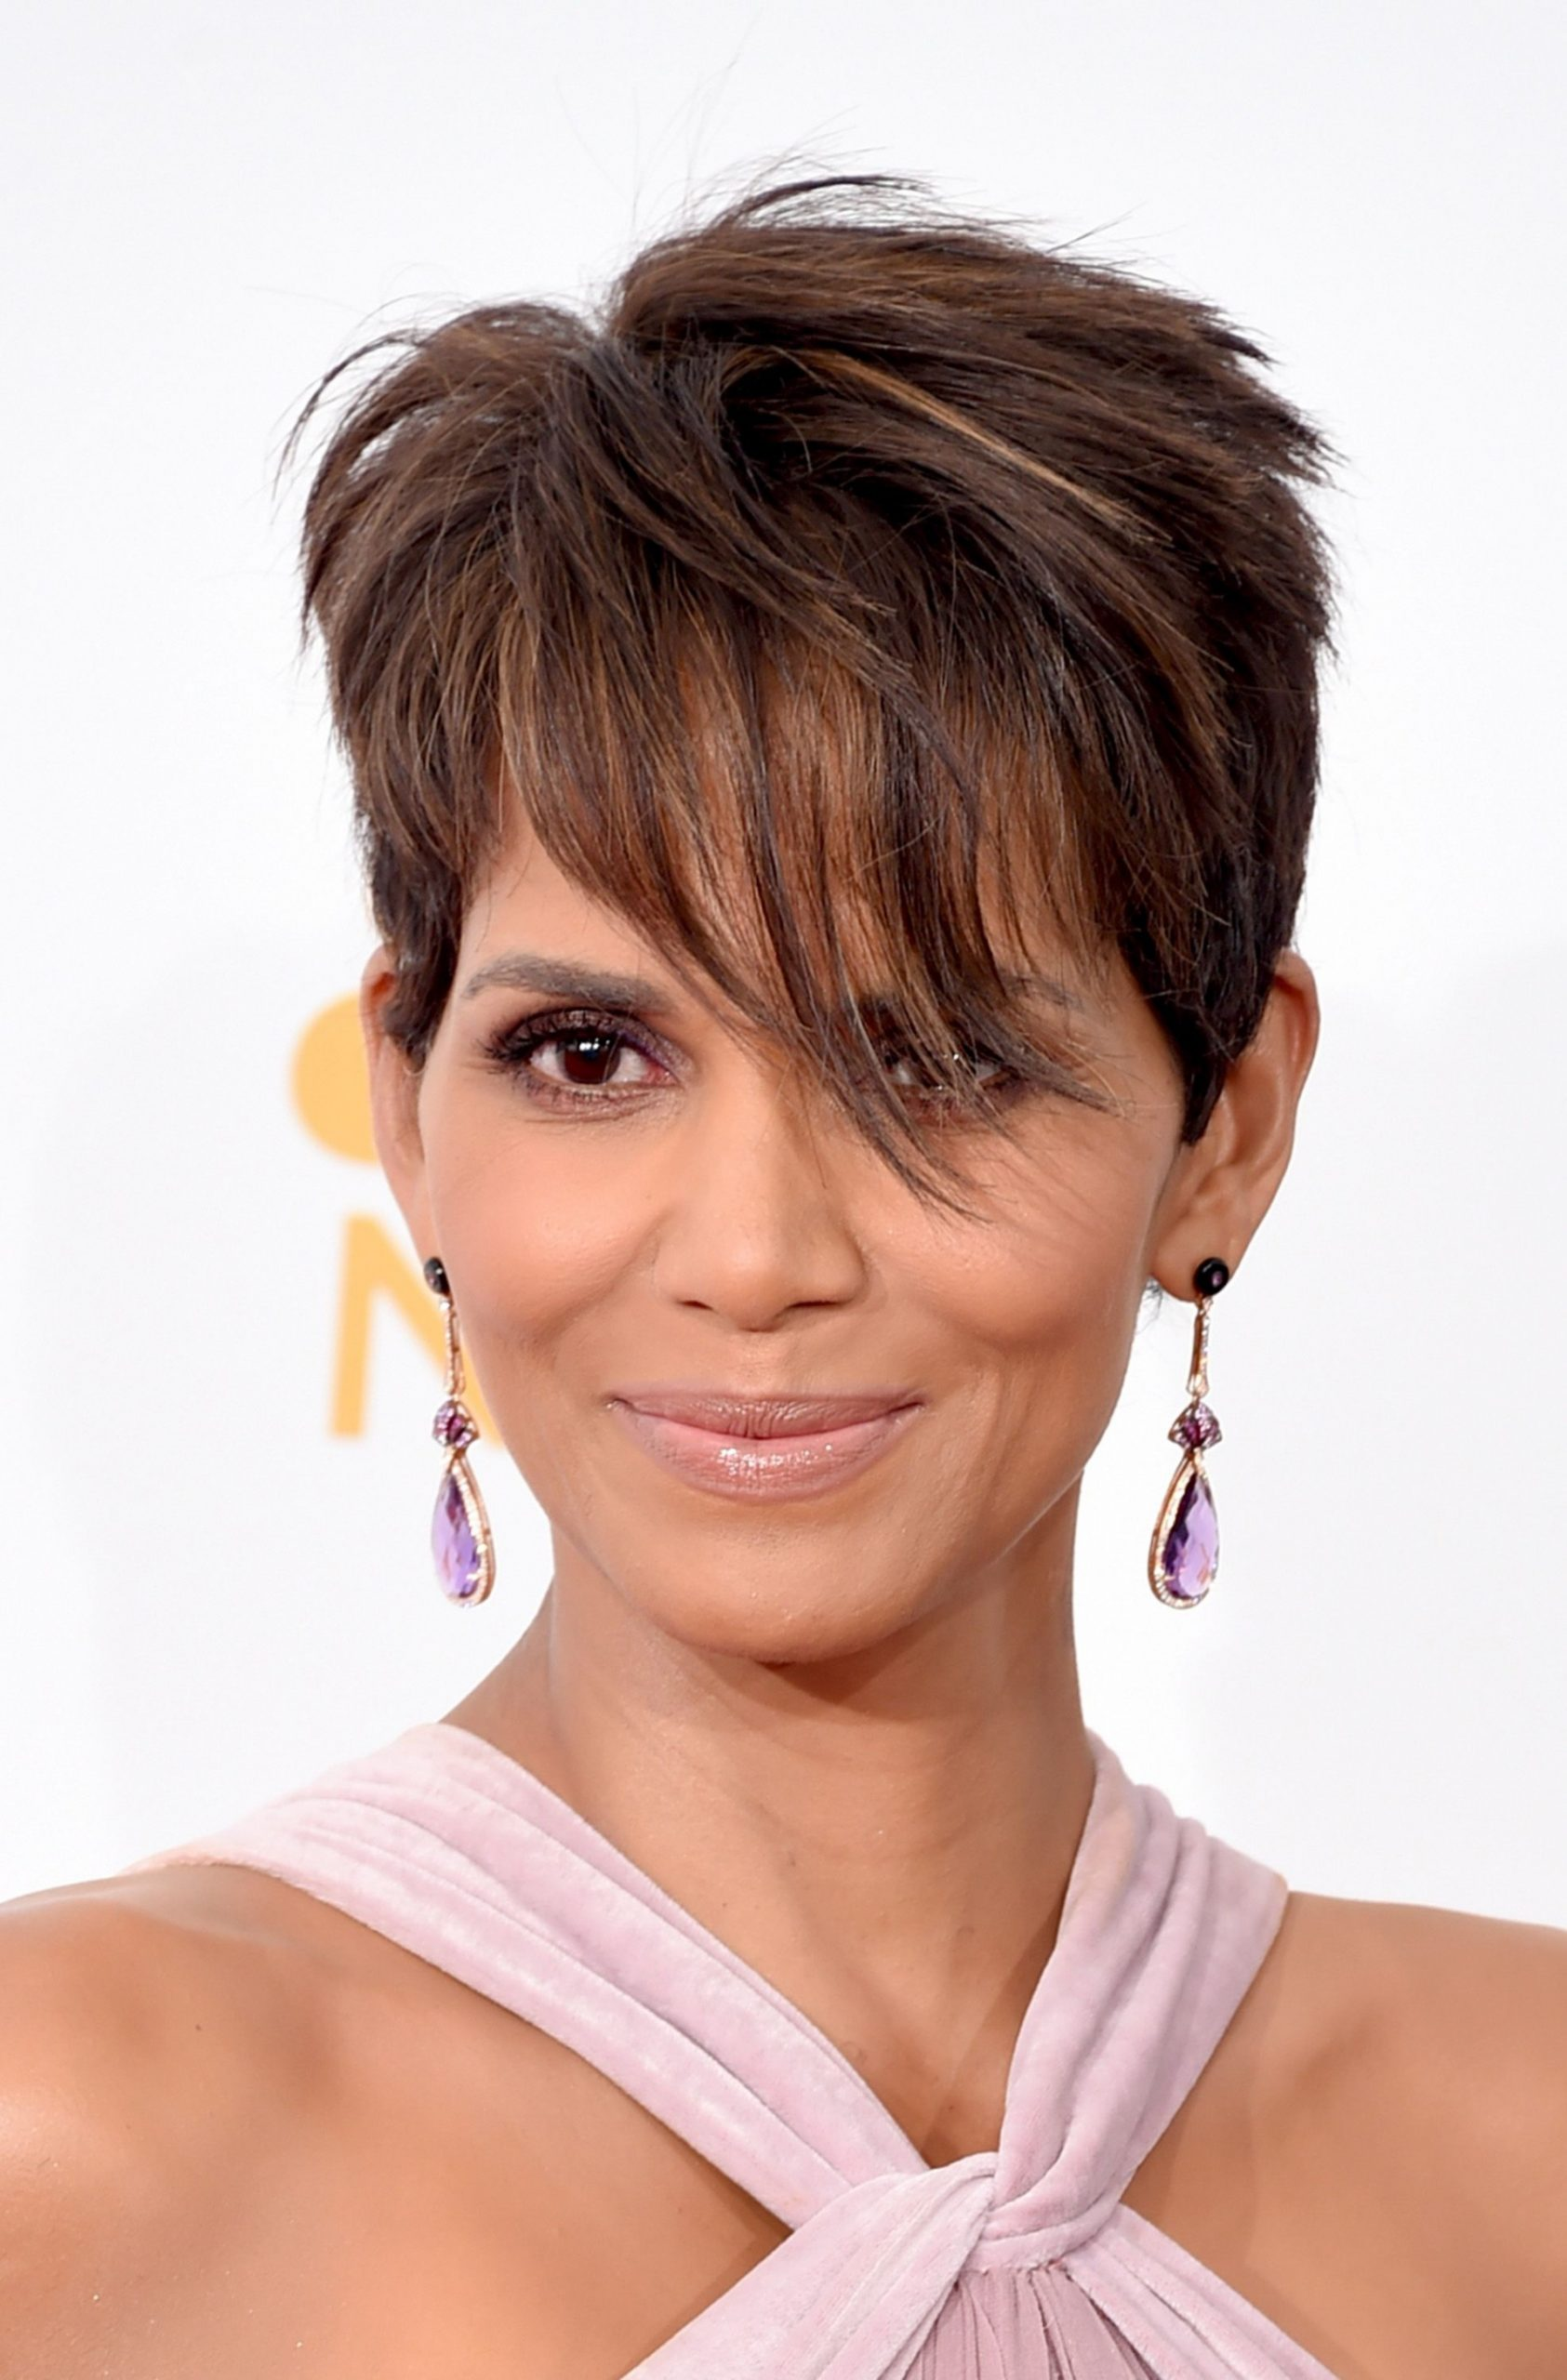 11 Classic And Cool Short Hairstyles For Older Women Short Choppy Hairstyles For Over 40